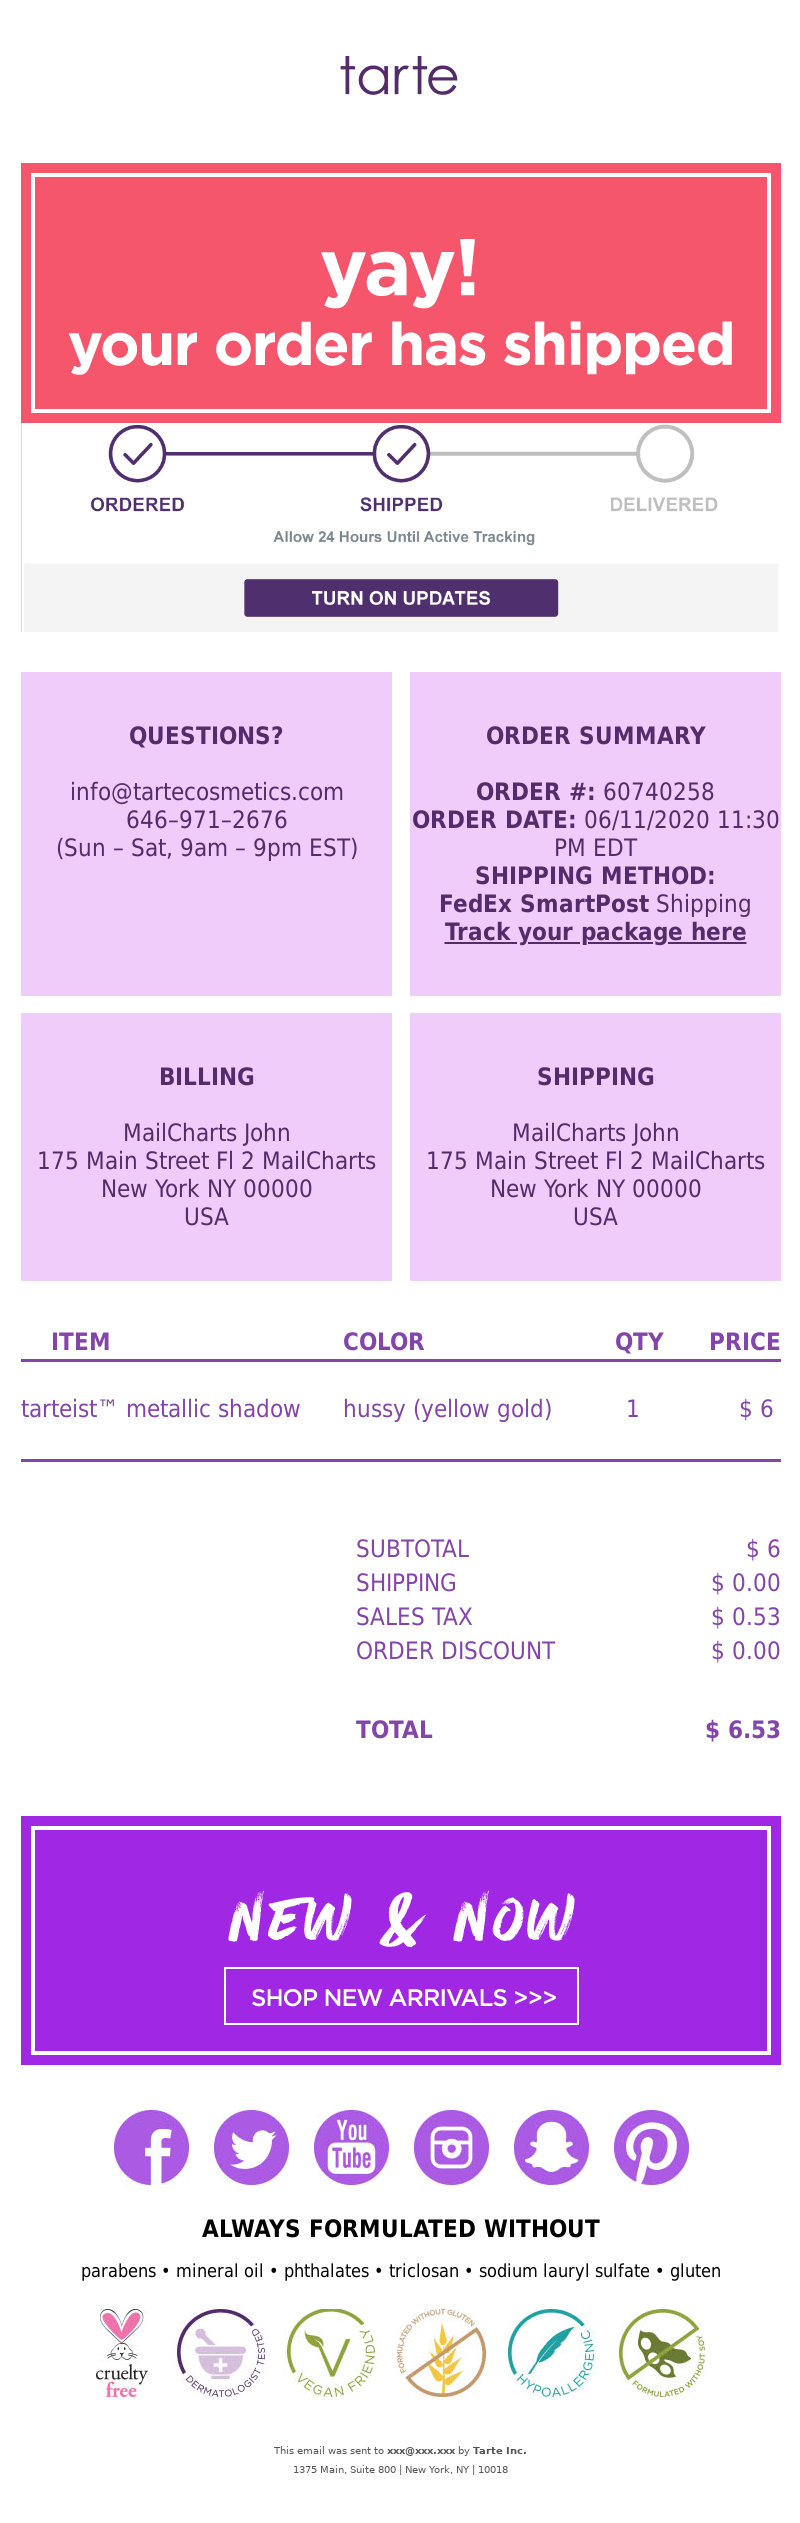 Tarte Cosmetics - MailCharts, your order has shipped...get excited!